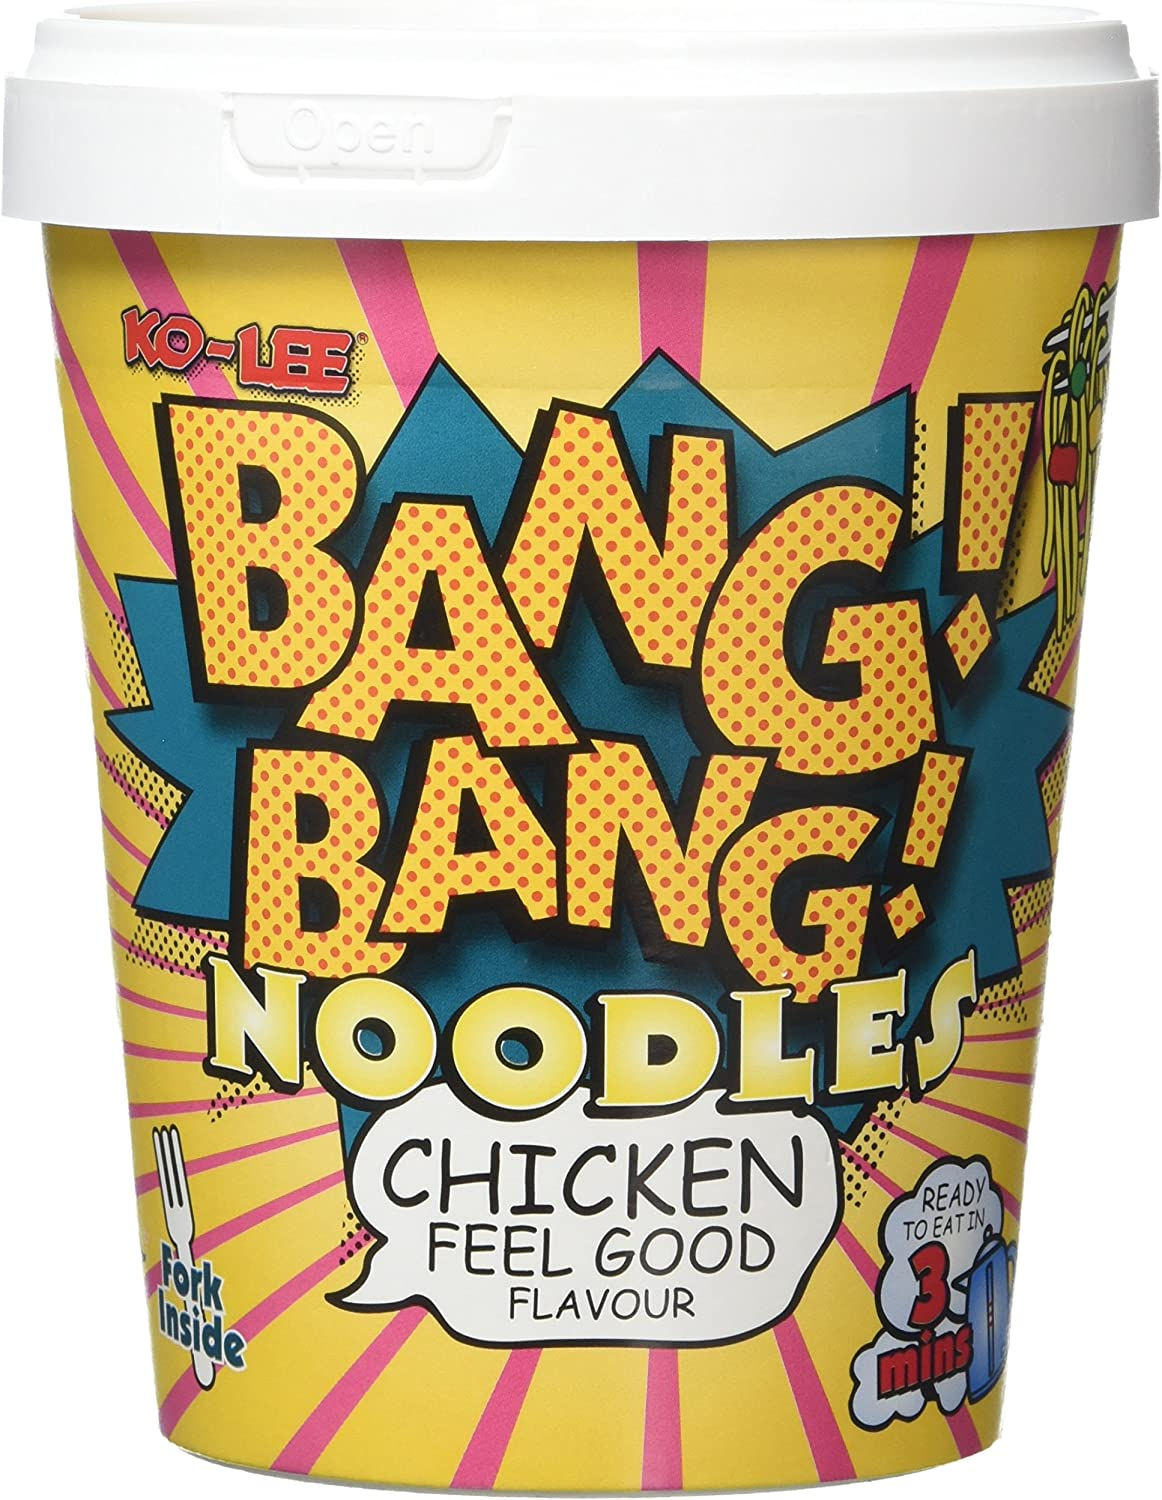 KOLEE Direct Fort Worth Mall store BangBang Noodles Chicken Feel Good 8 of g Flavour 65 Pack